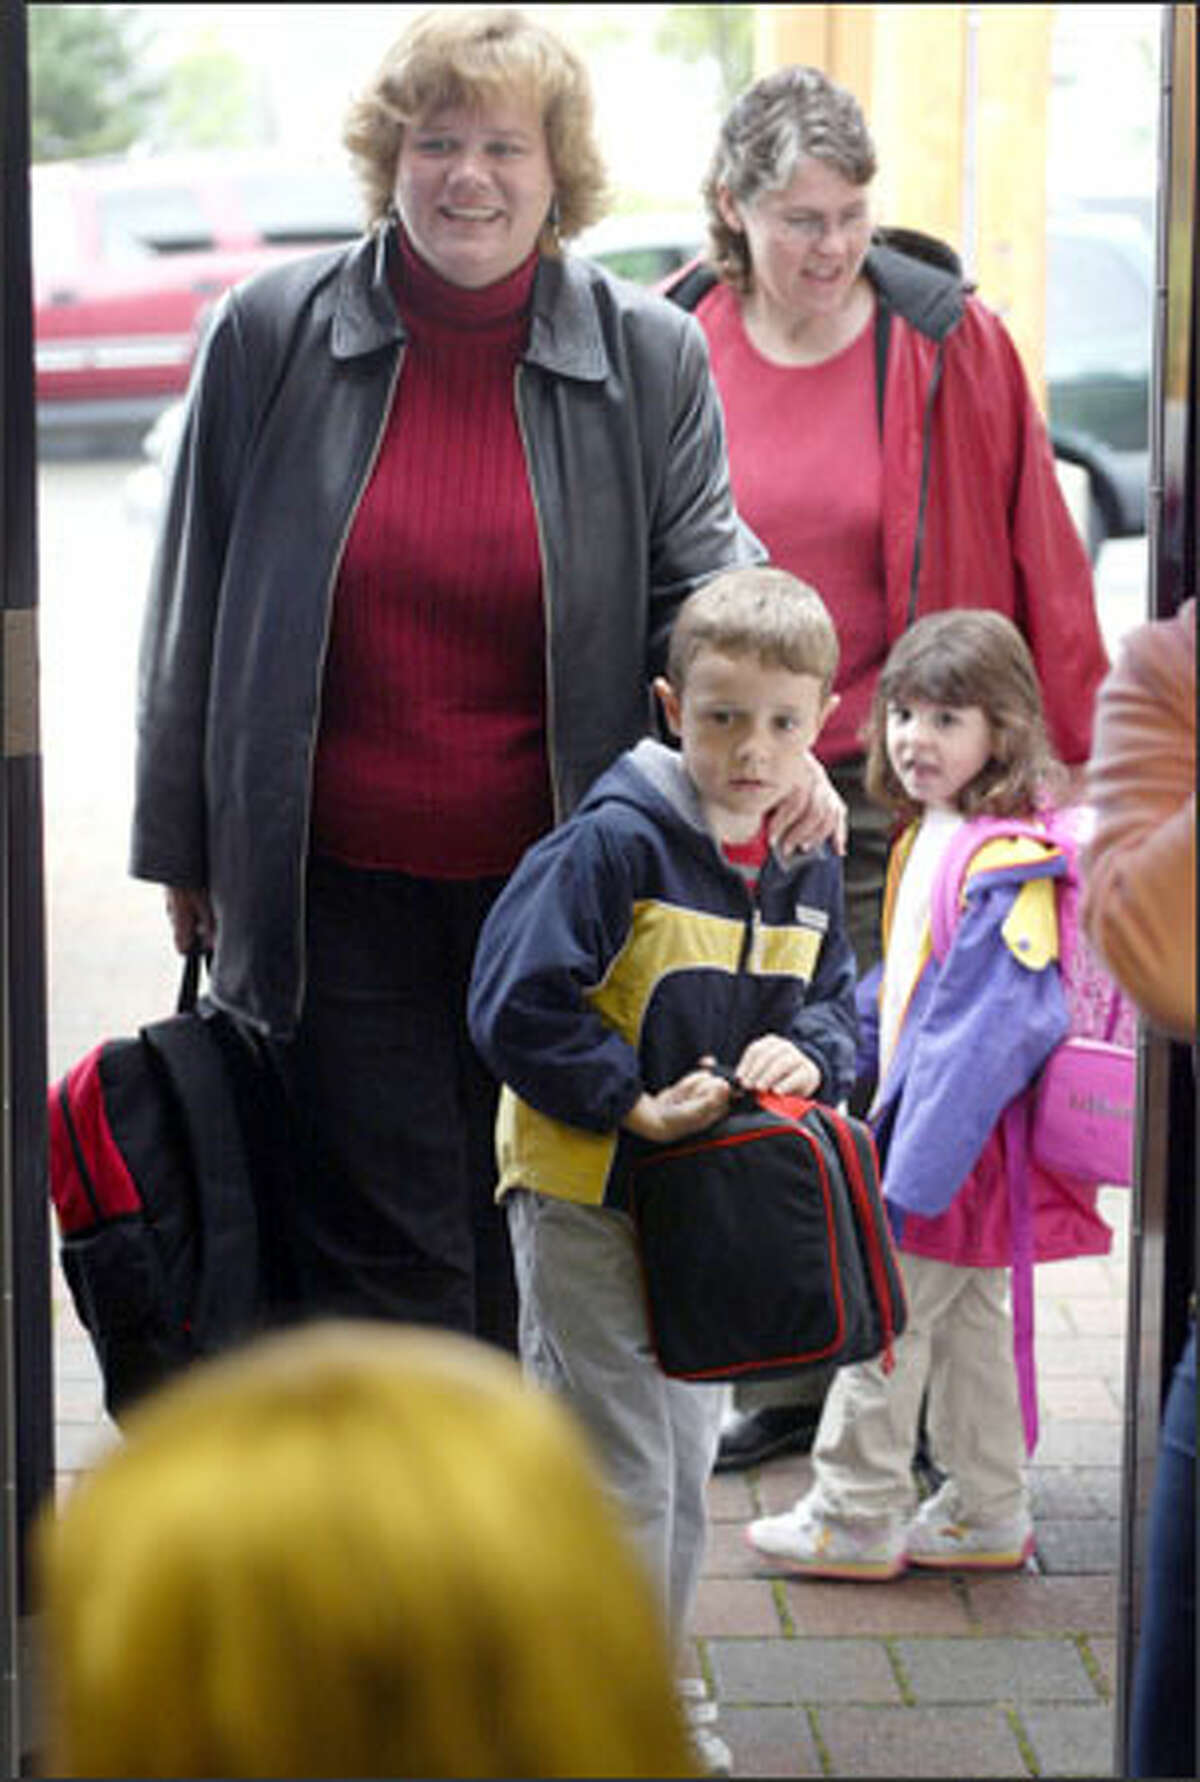 A little trepidation is apparent as Joseph Stryker confronts the first day of kindergarten with mom Tina at Soundview School in Lynnwood last Wednesday. Also making their way toward class are Susan Paish and daughter Megan.